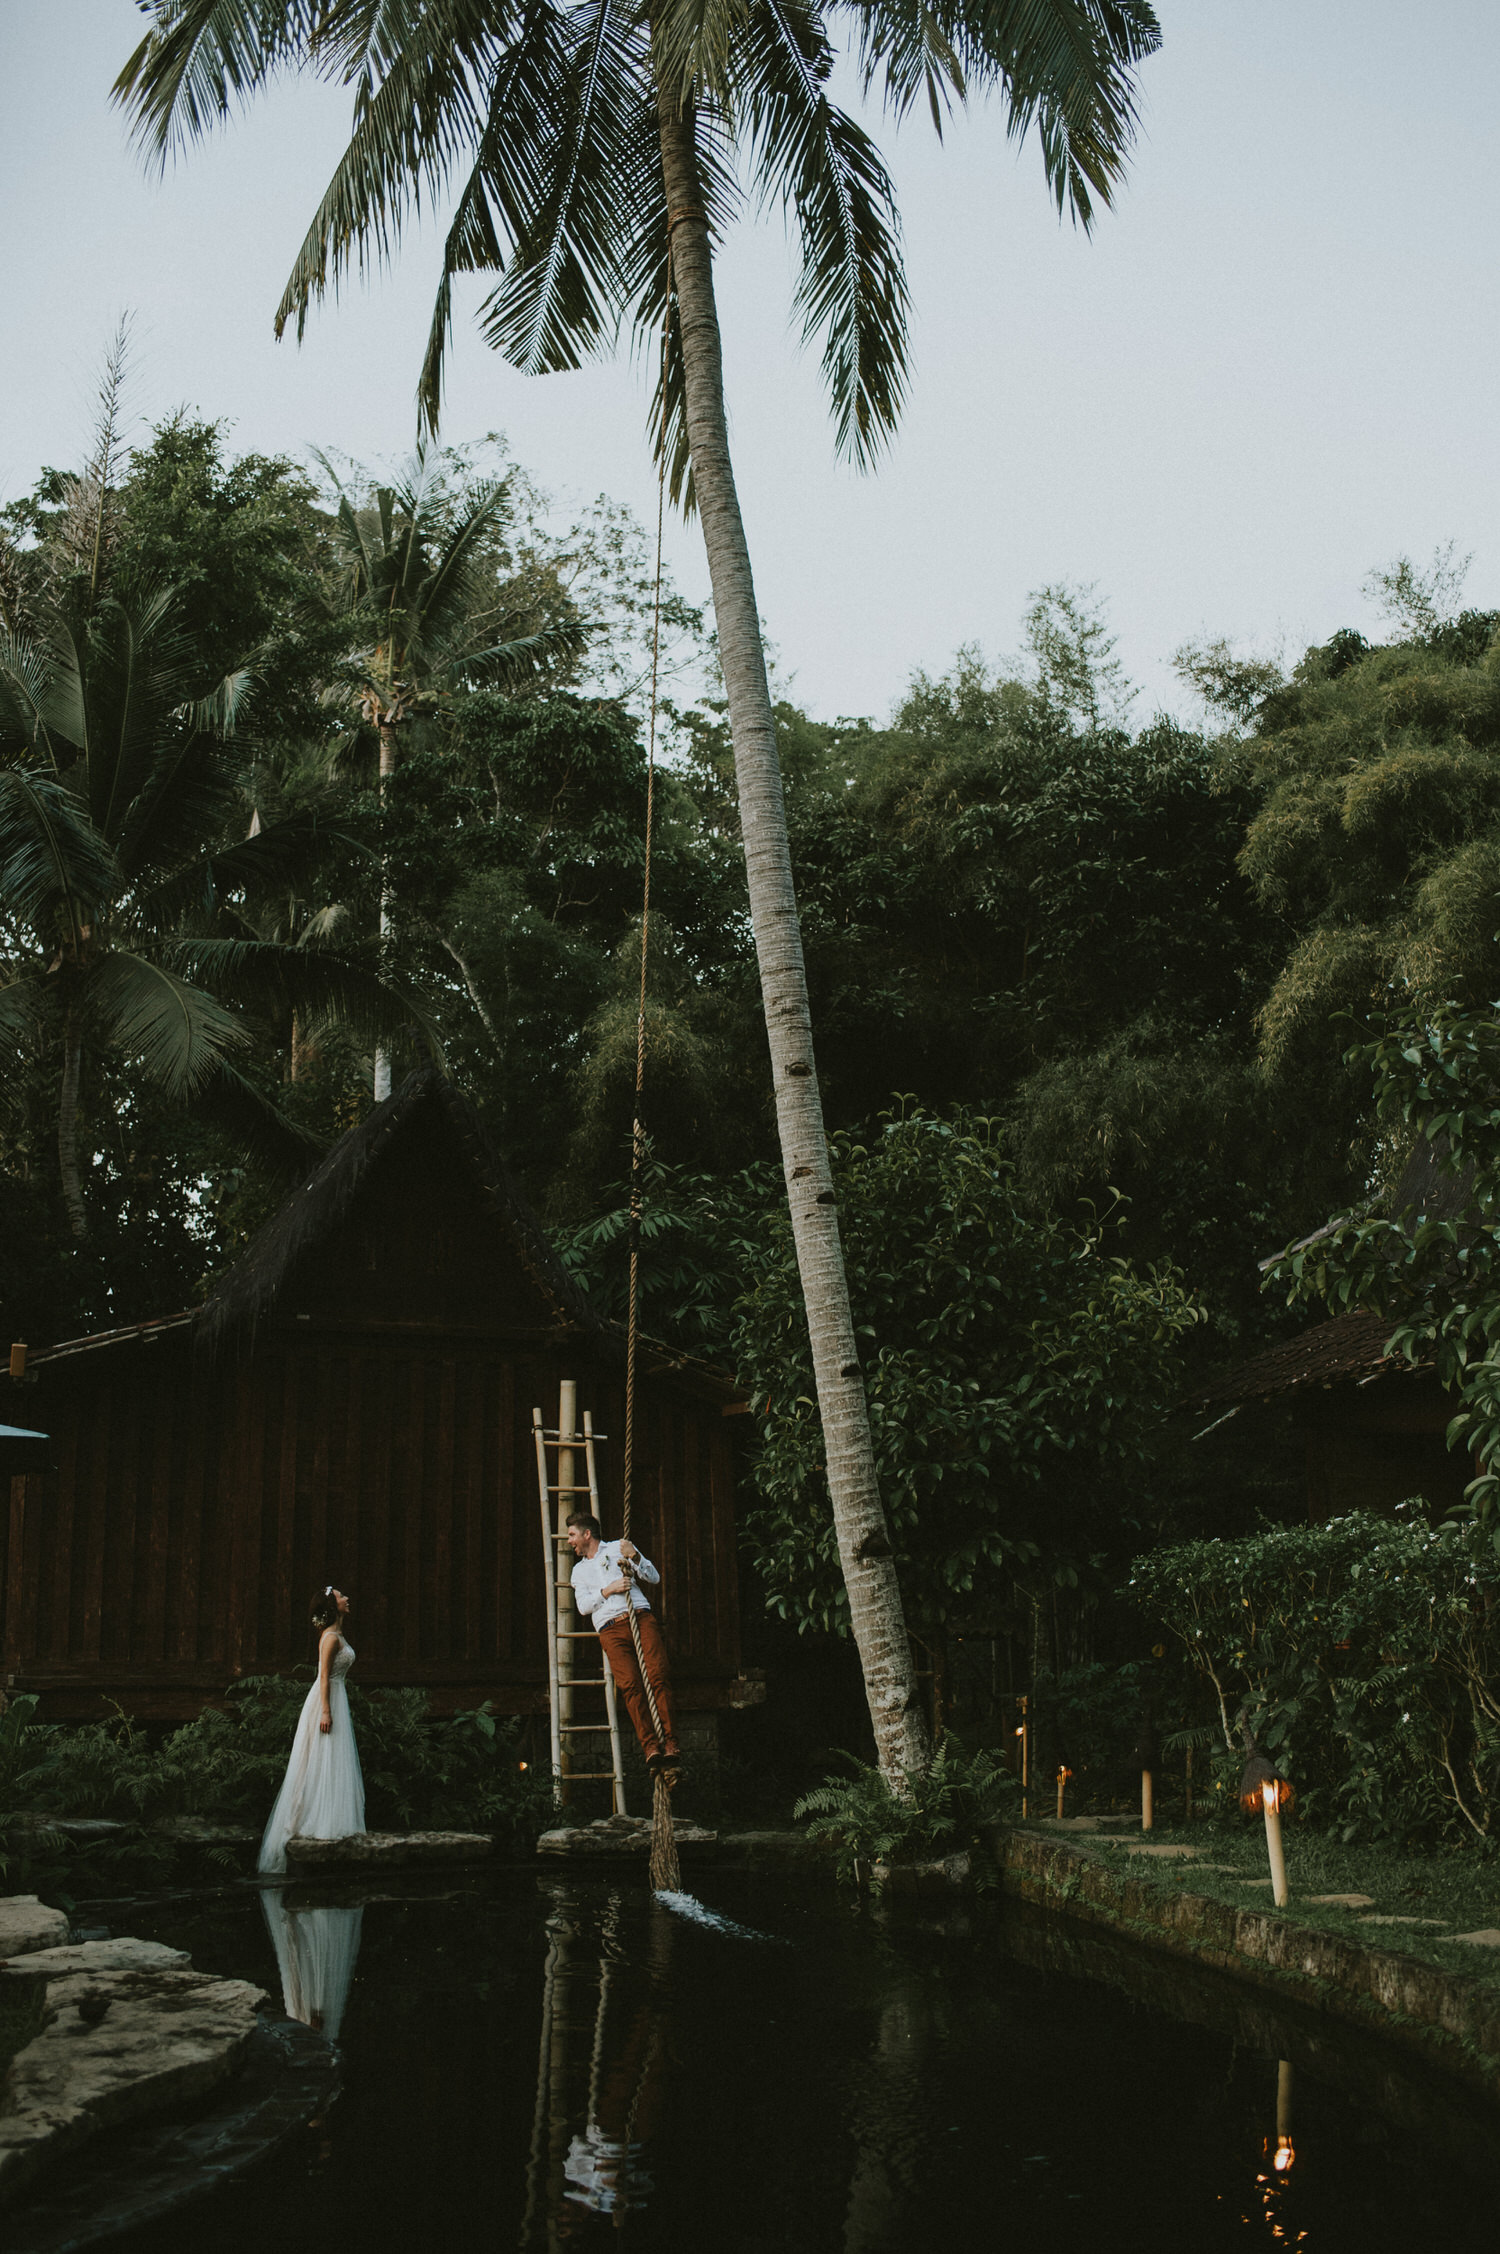 bali-wedding-ubud-wedding-wedding-destination-diktatphotography-kadek-artayasa-elaine-and-glenn-107